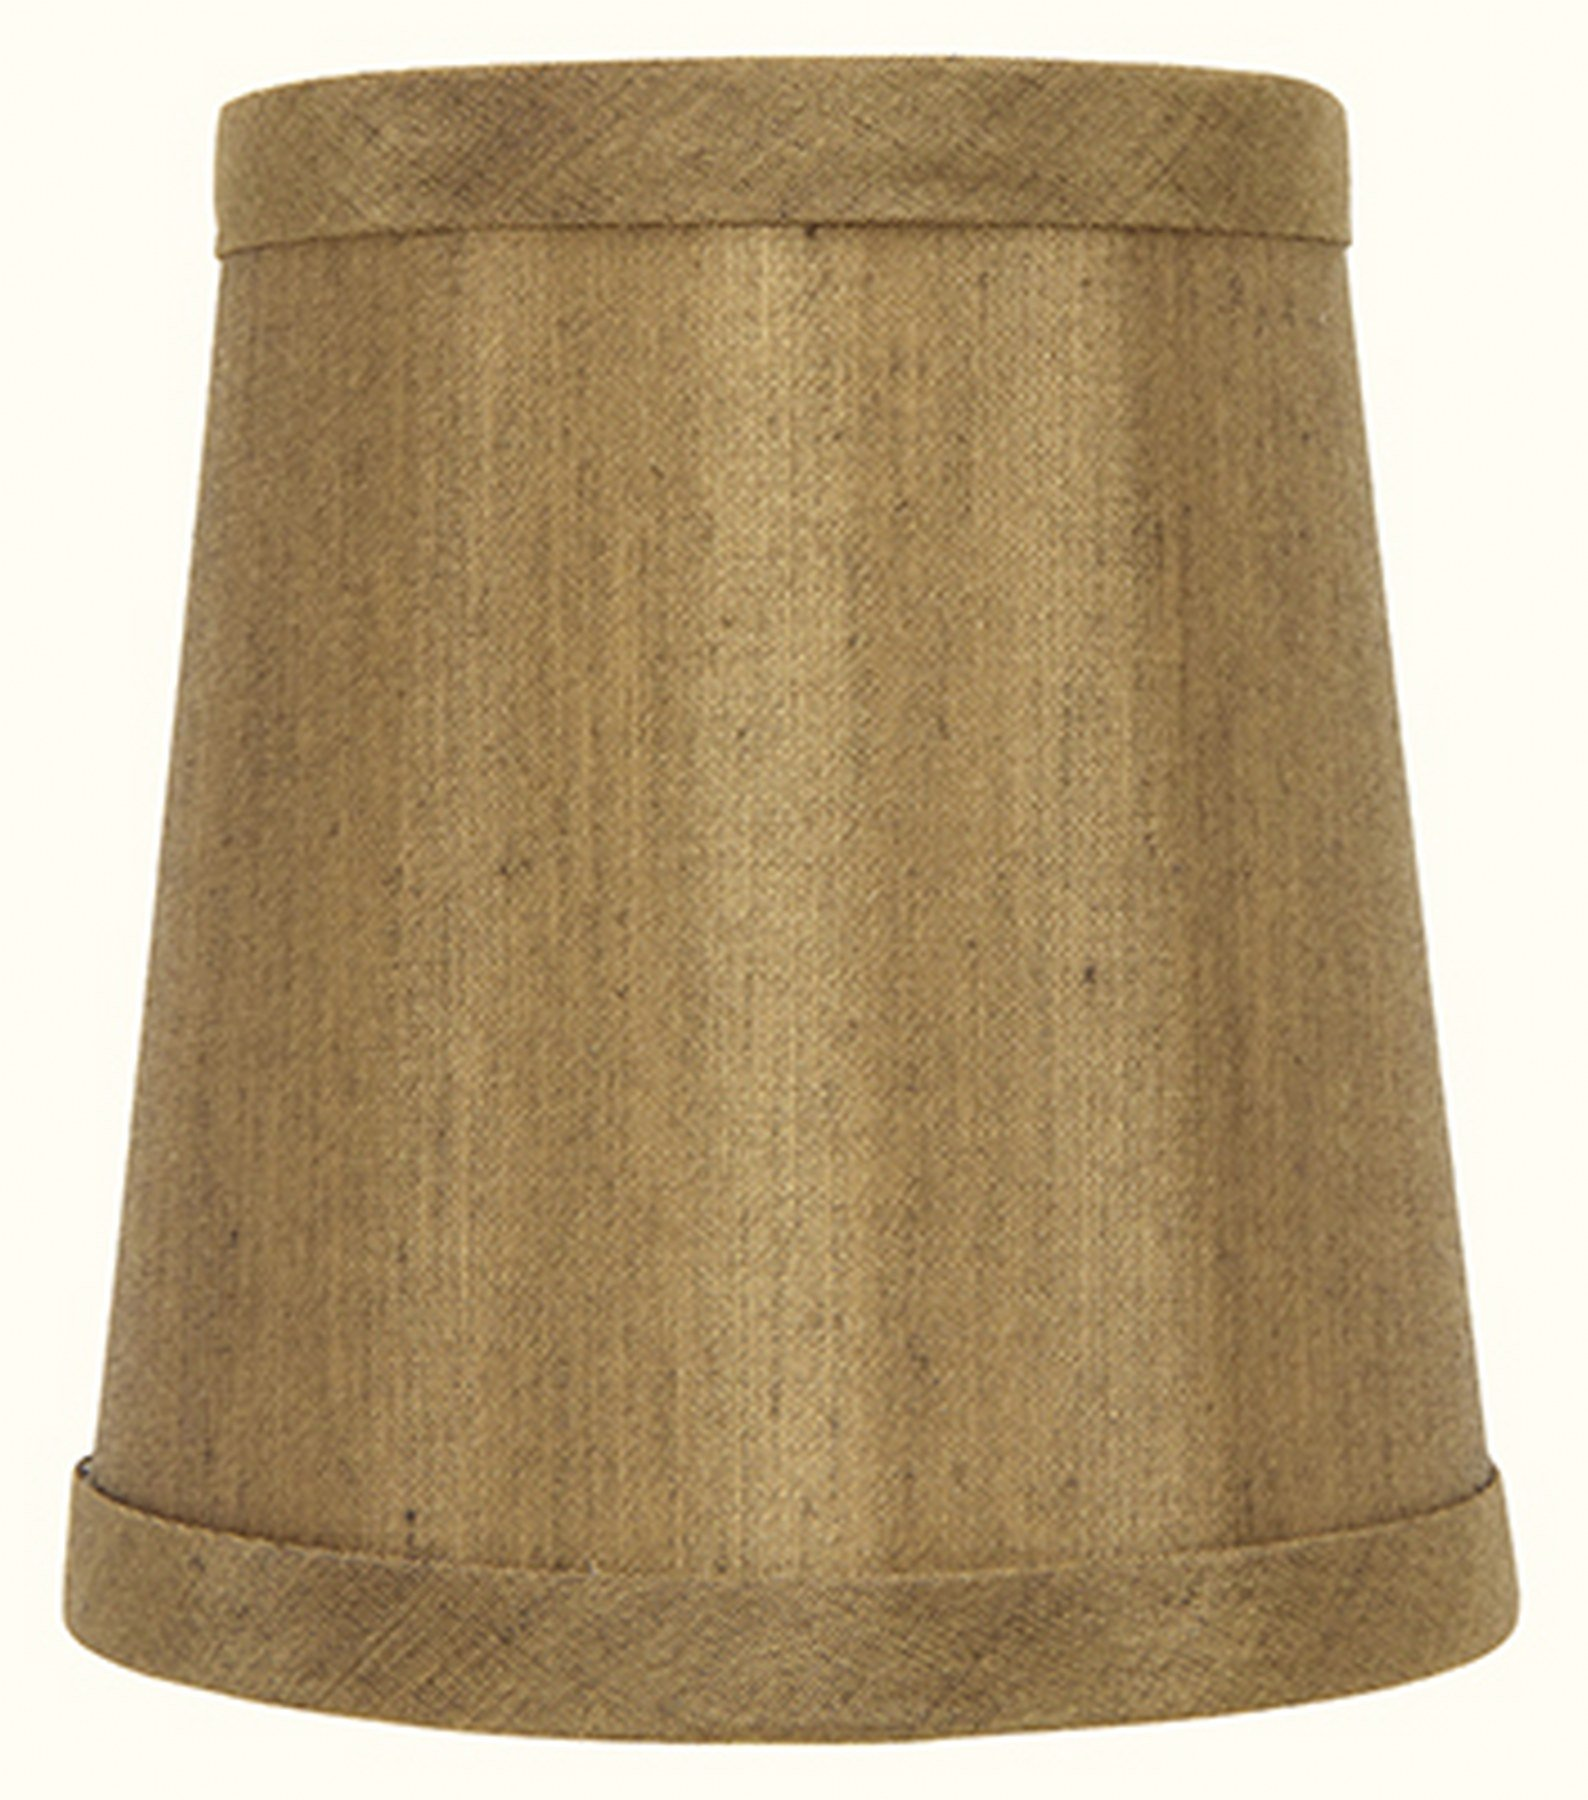 Upgradelights Golden Bronze Slip on Uno Lamp Shade (8.5x10x8)